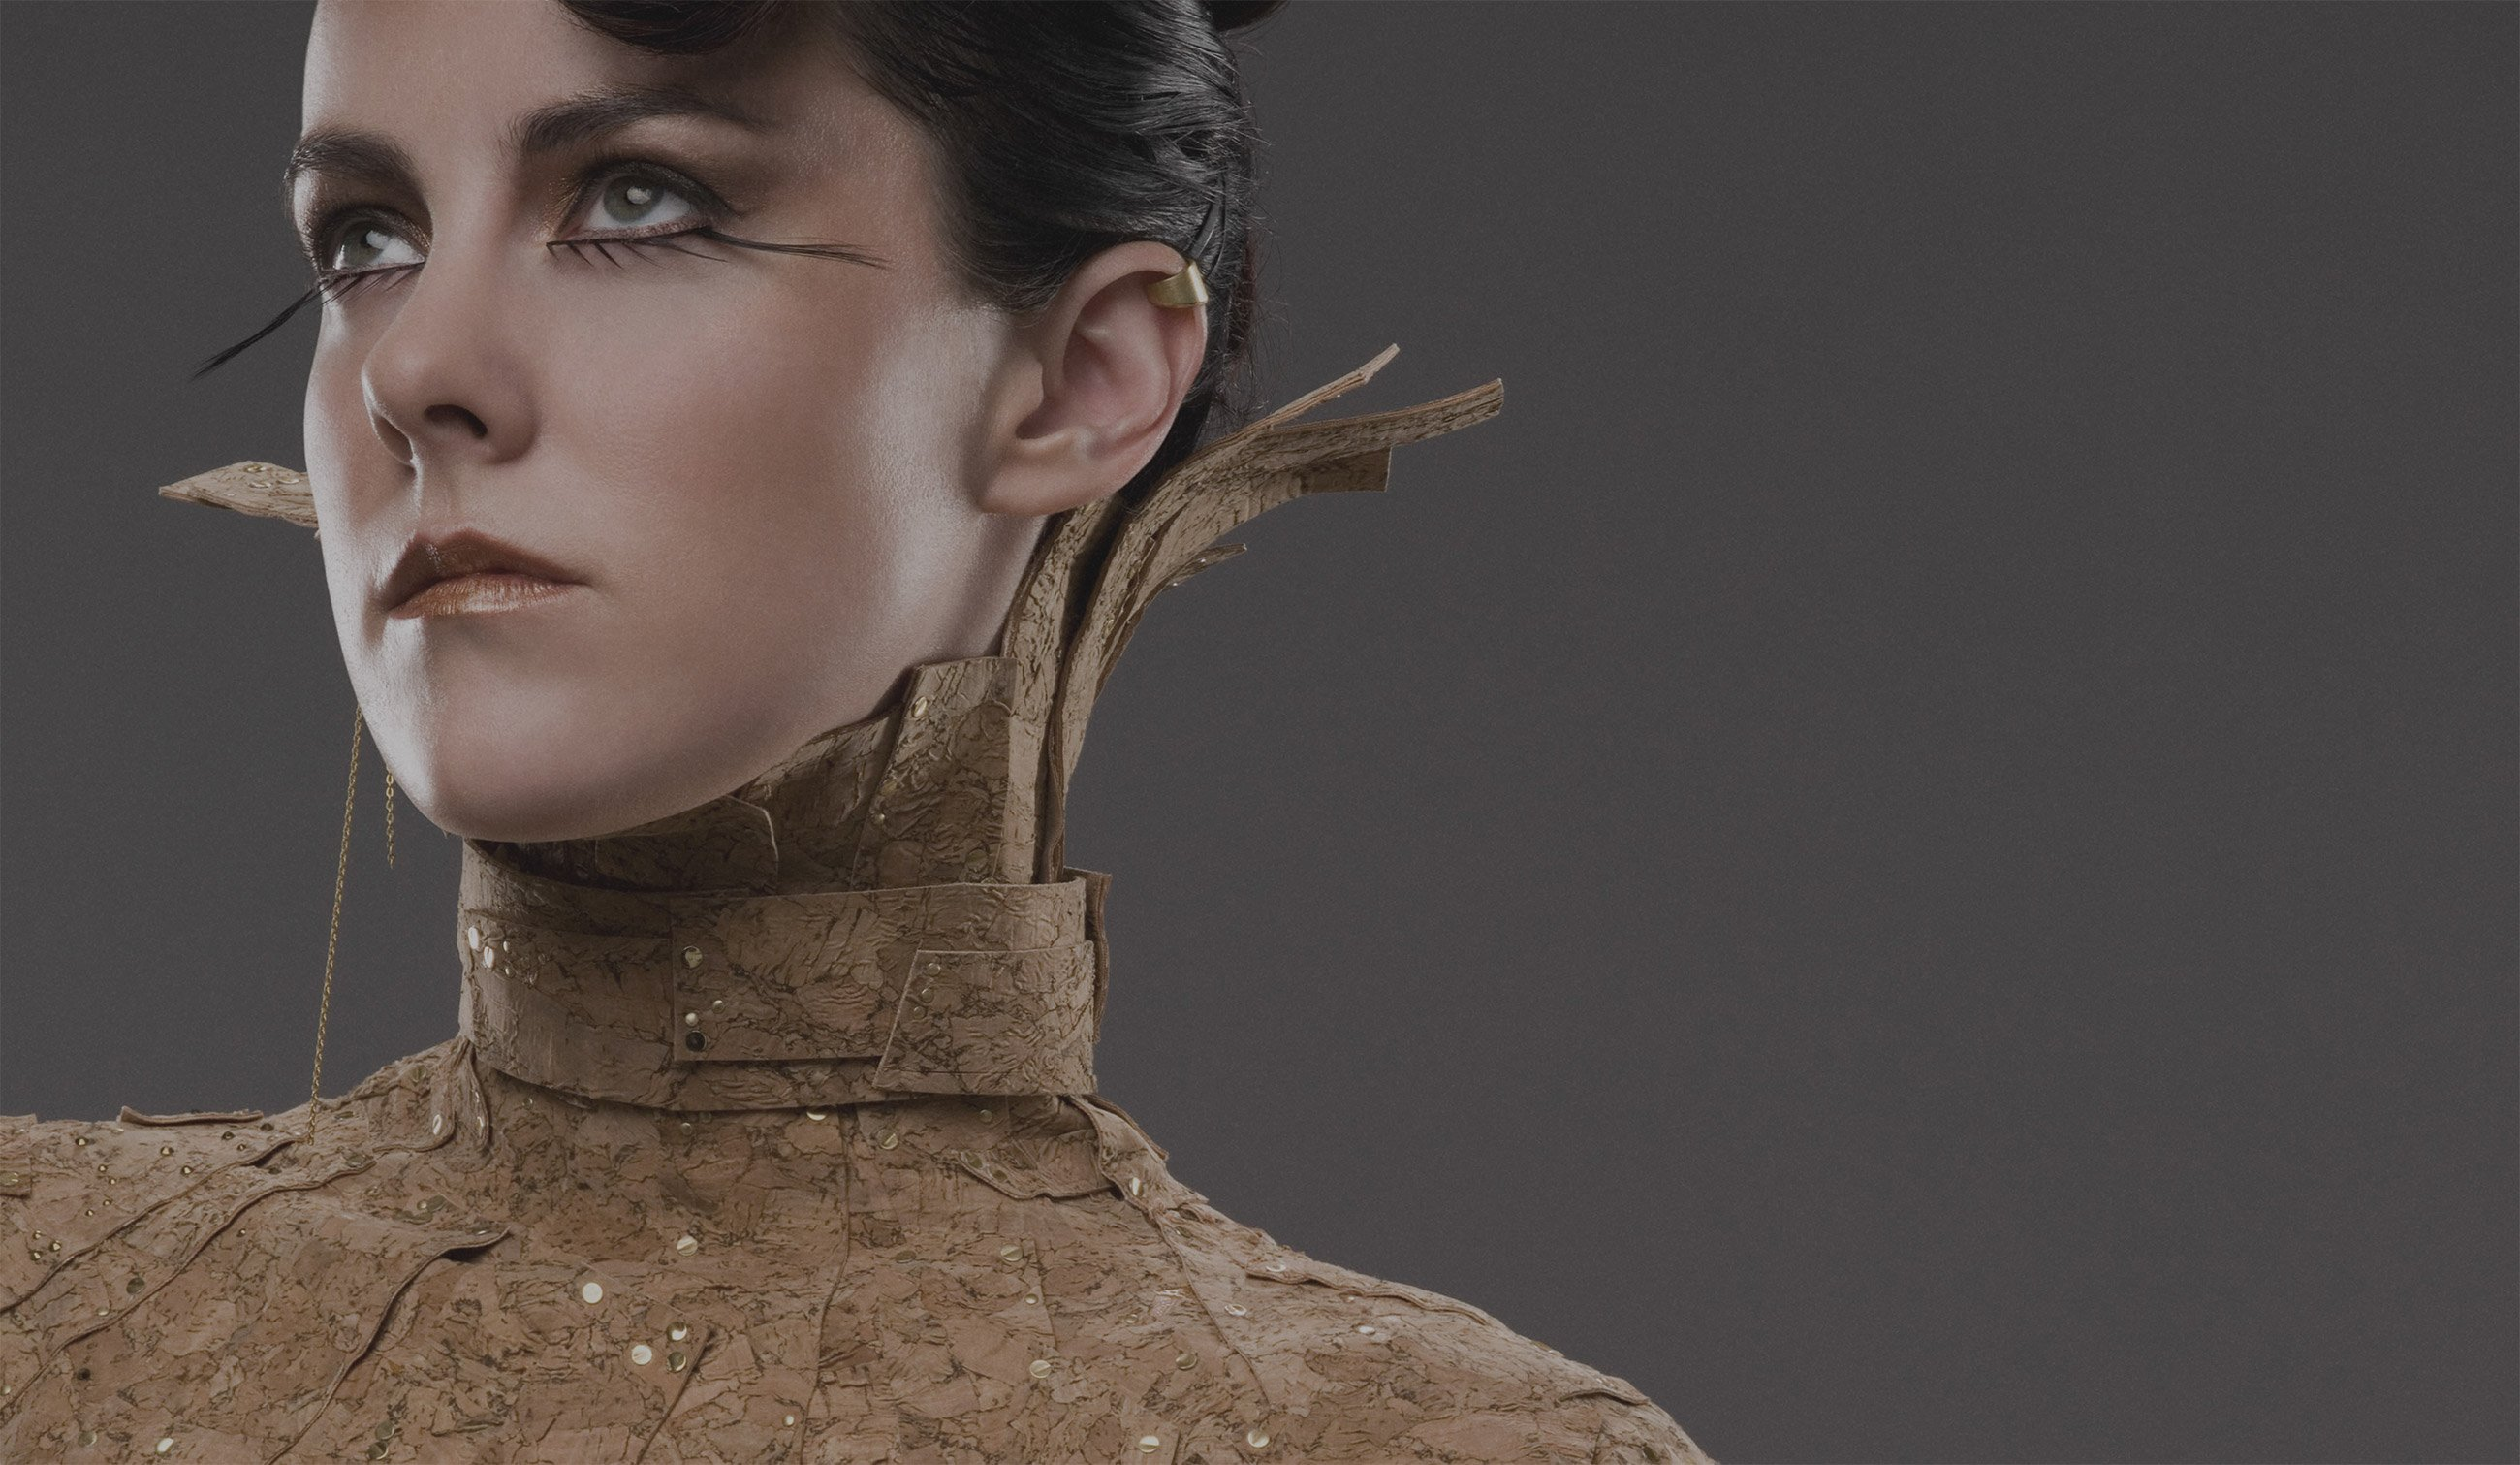 Catching Fire's Johanna Mason Strikes A Pose In The ...